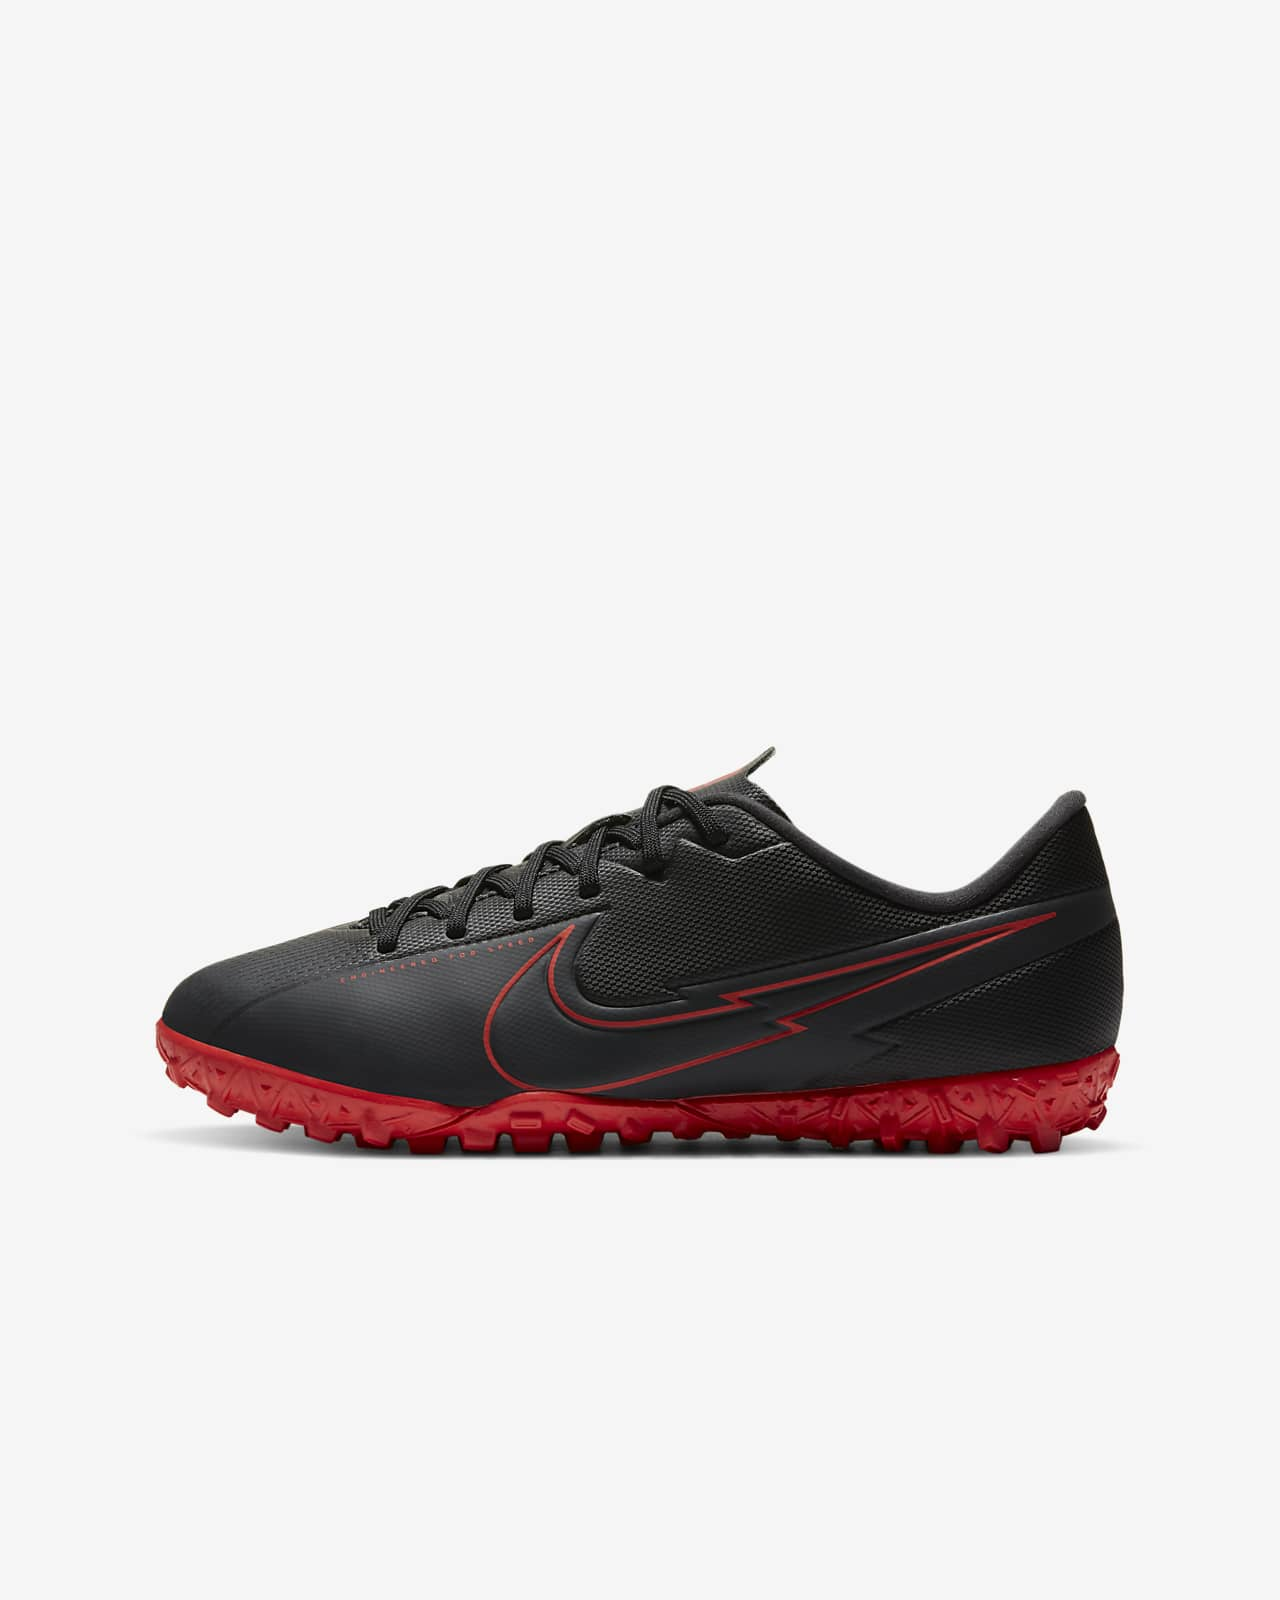 Nike Jr. Mercurial Vapor 13 Academy TF Younger/Older Kids' Artificial-Turf Football Shoe